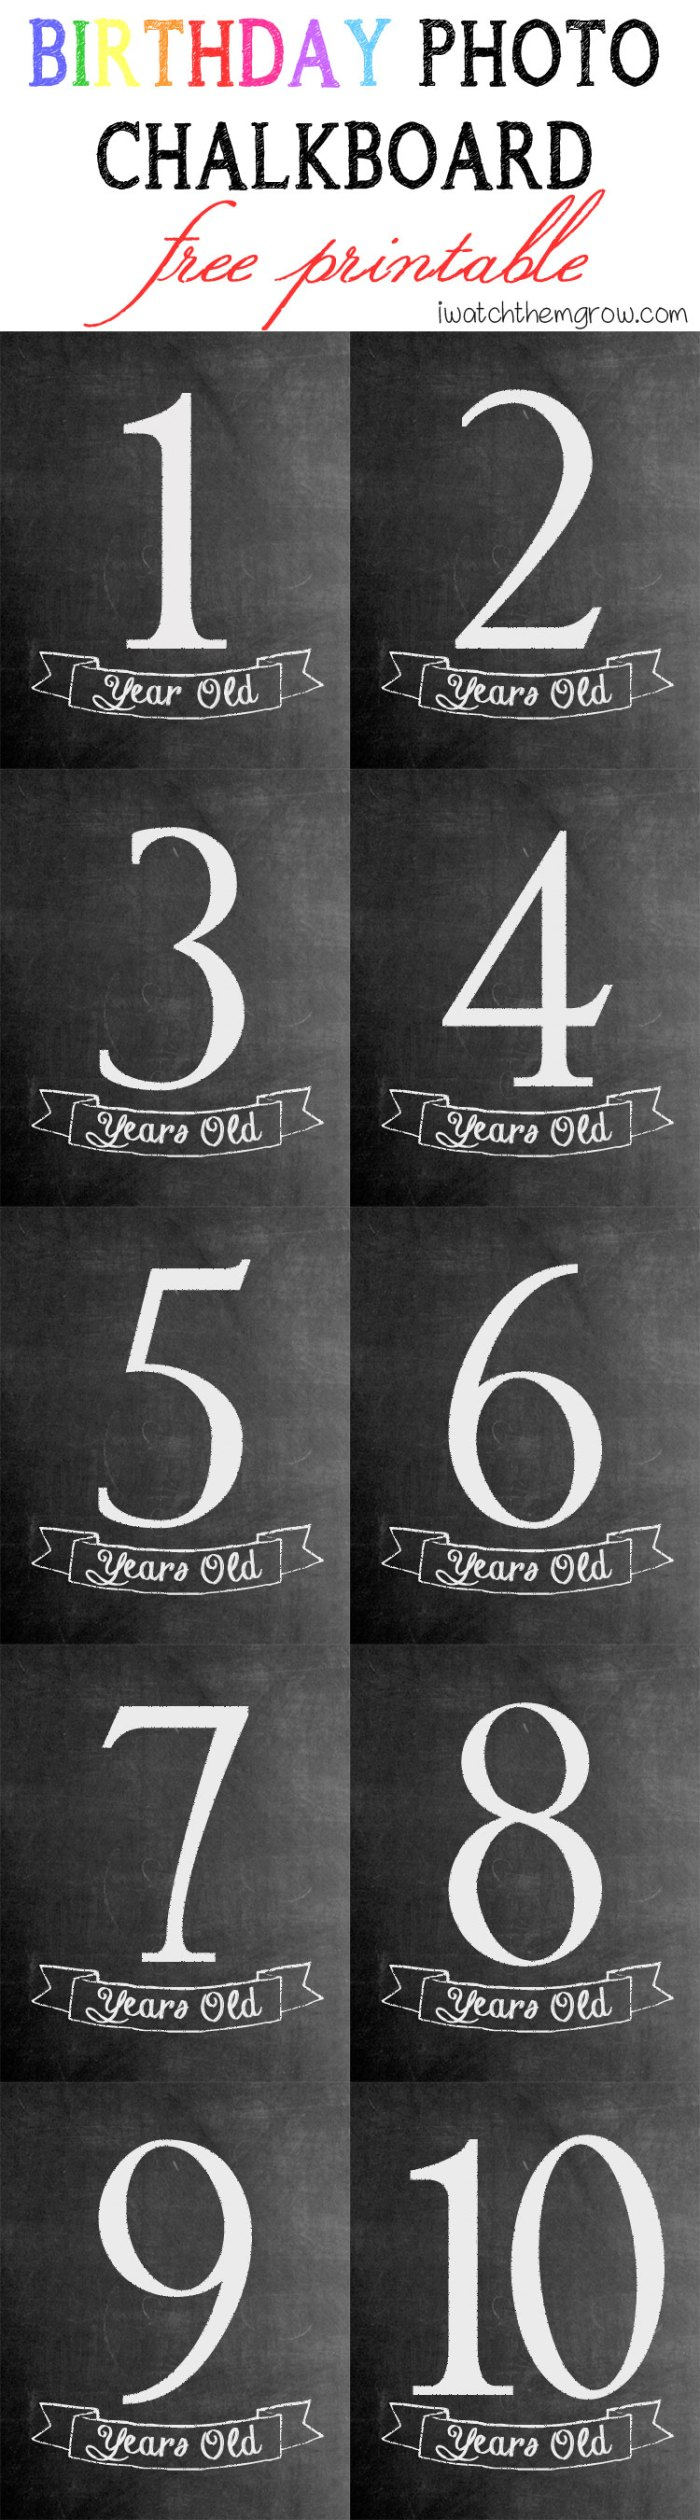 Birthday photo chalkboard free printable for ages 1-10!